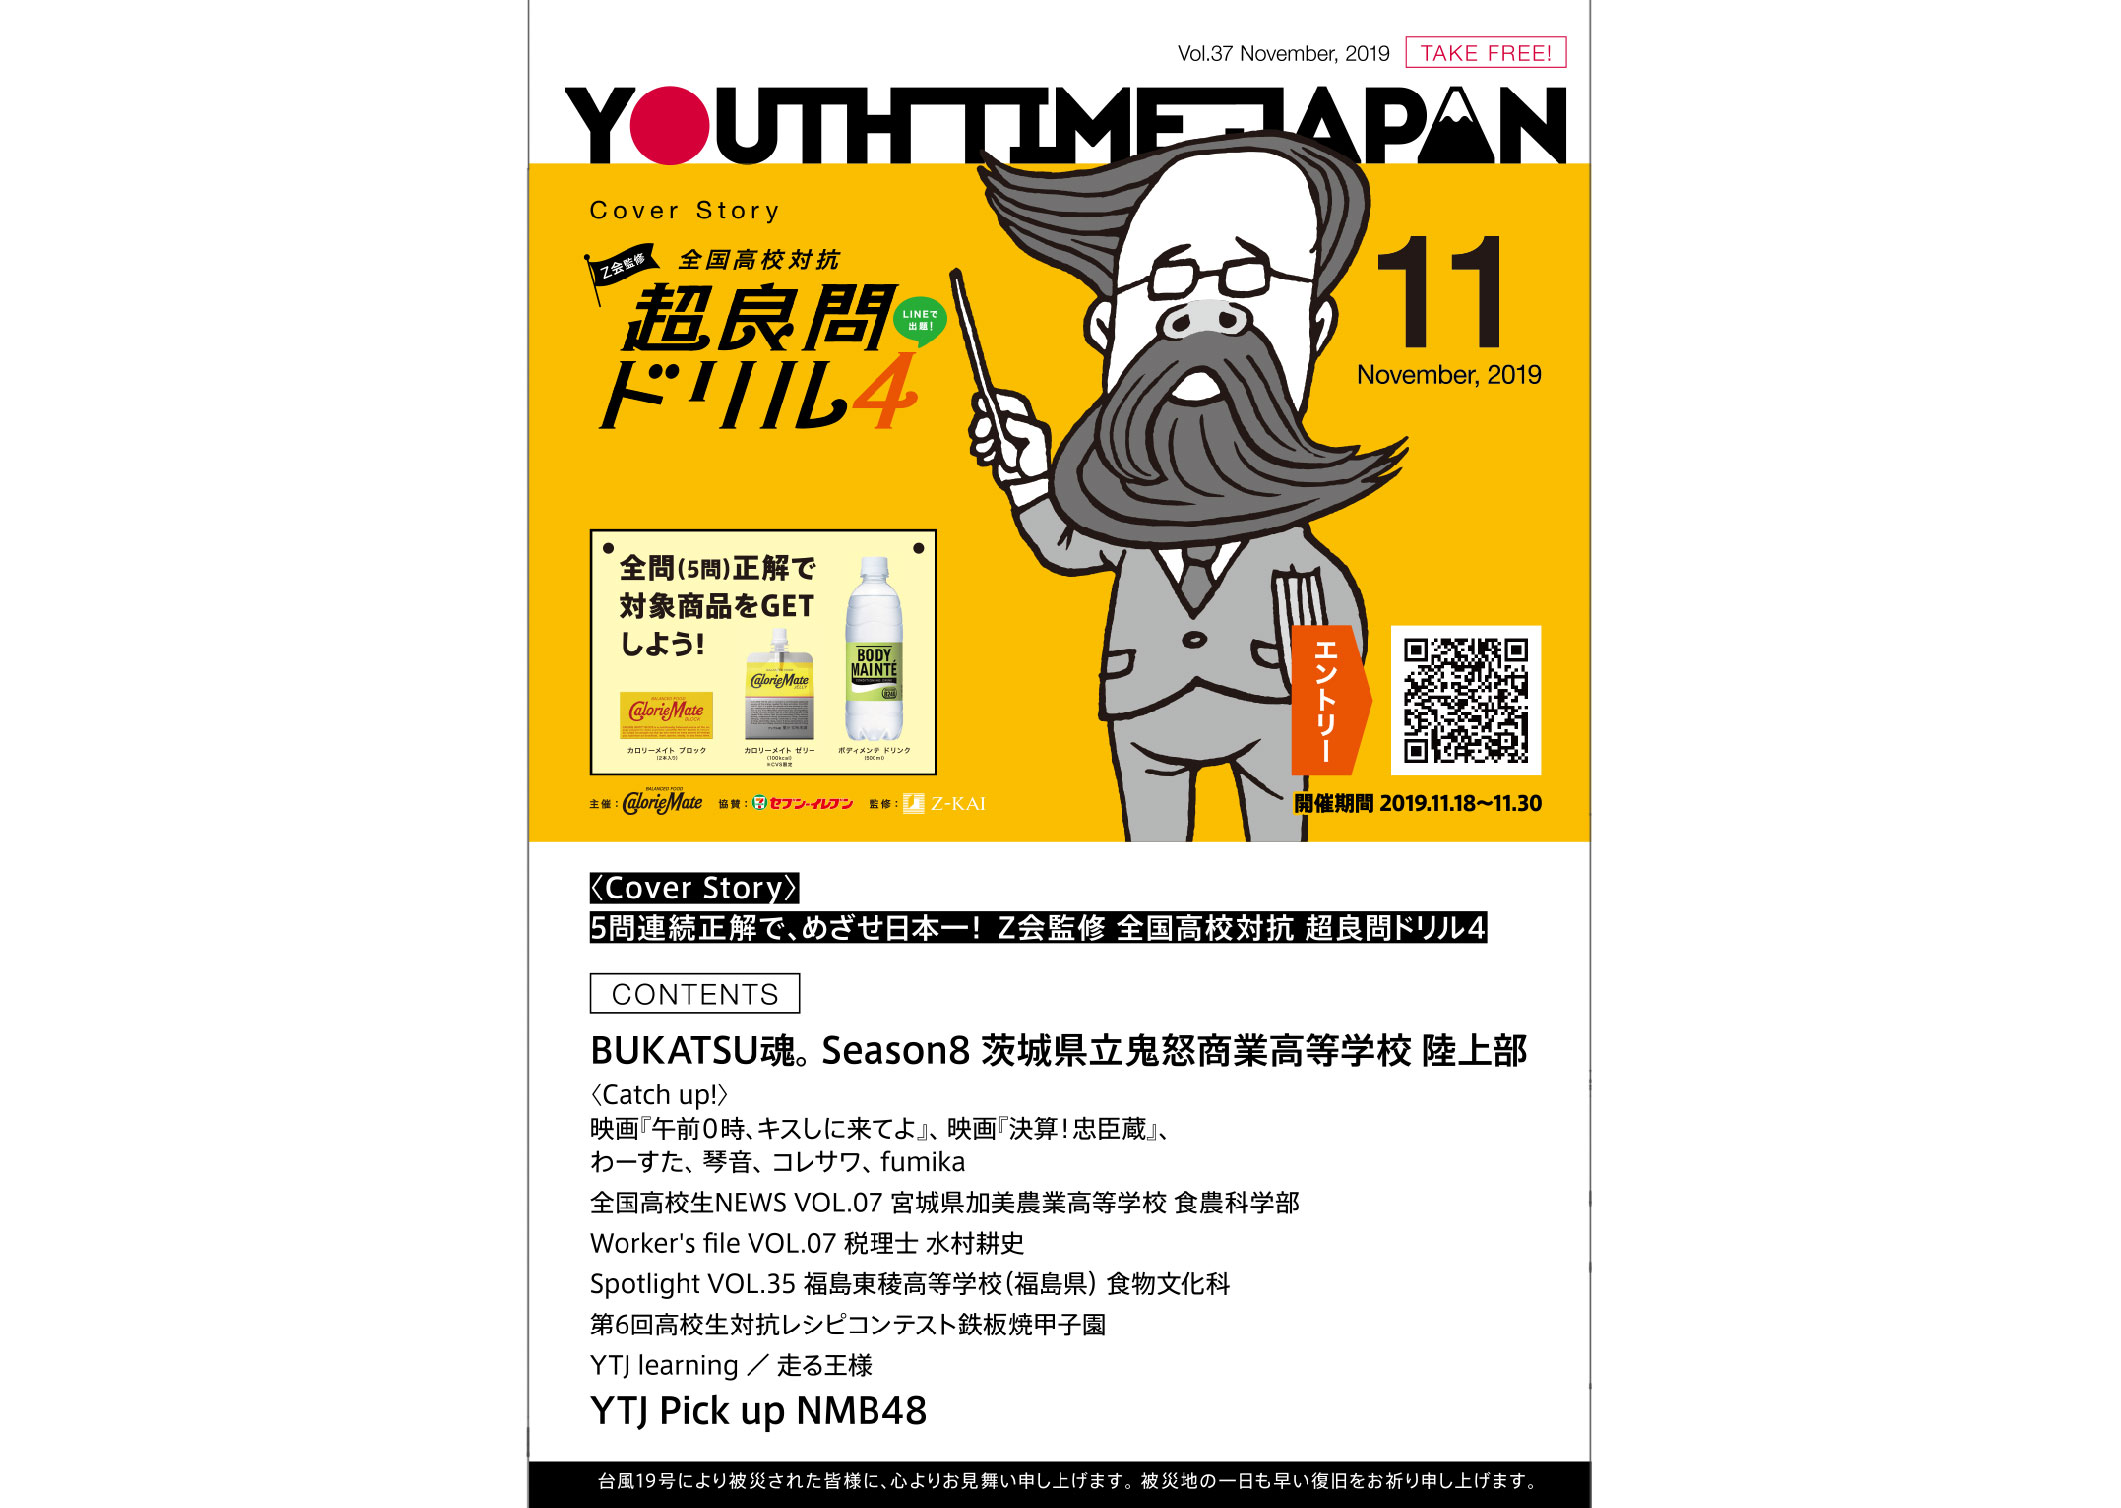 YOUTH TIME JAPAN 2019年11月号